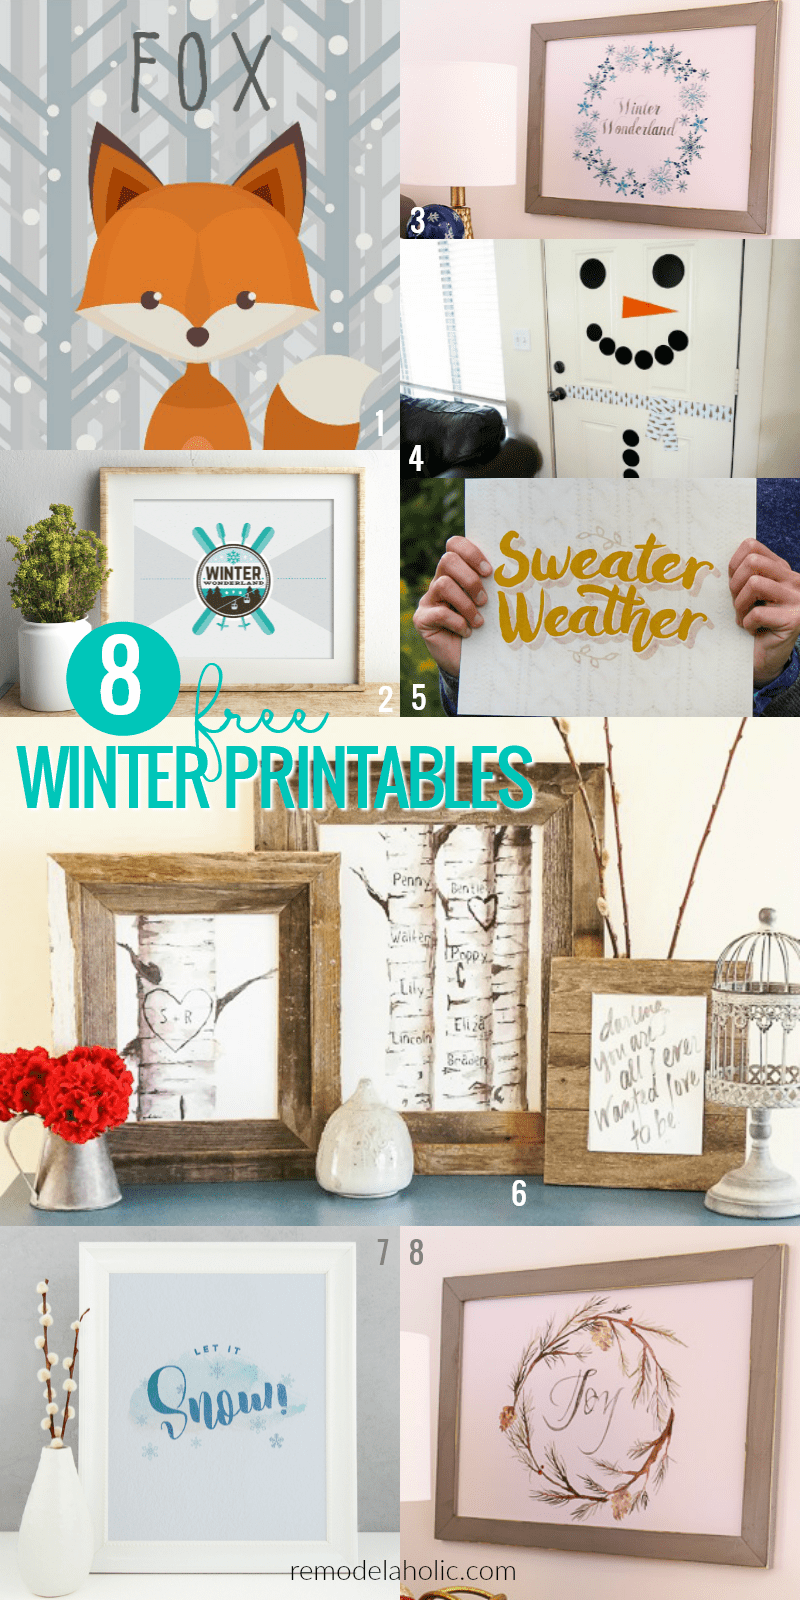 Free Winter Printables To Decorate For January And February | Welcome the chilly weather with this free winter printable Let It Snow wall decor. Perfect for decorating before and after Christmas, whether you have snow or not. Plus 9 more FREE winter printables for your home decor!